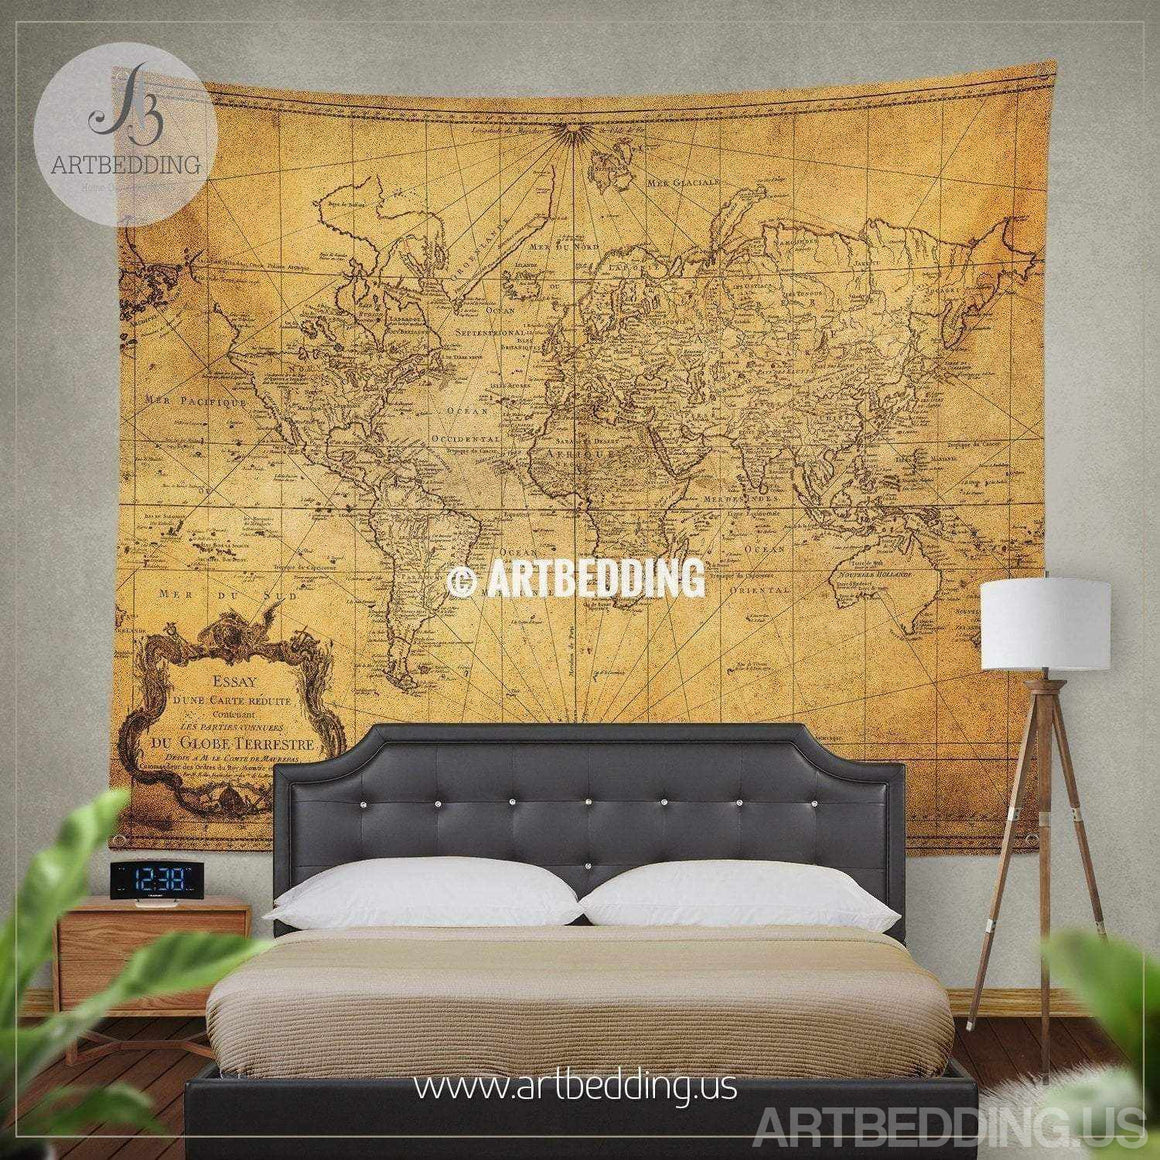 Vintage world map wall tapestry, Steampunk ancient world map wall hanging, vintage world map wall decor, vintage map wall art print Tapestry